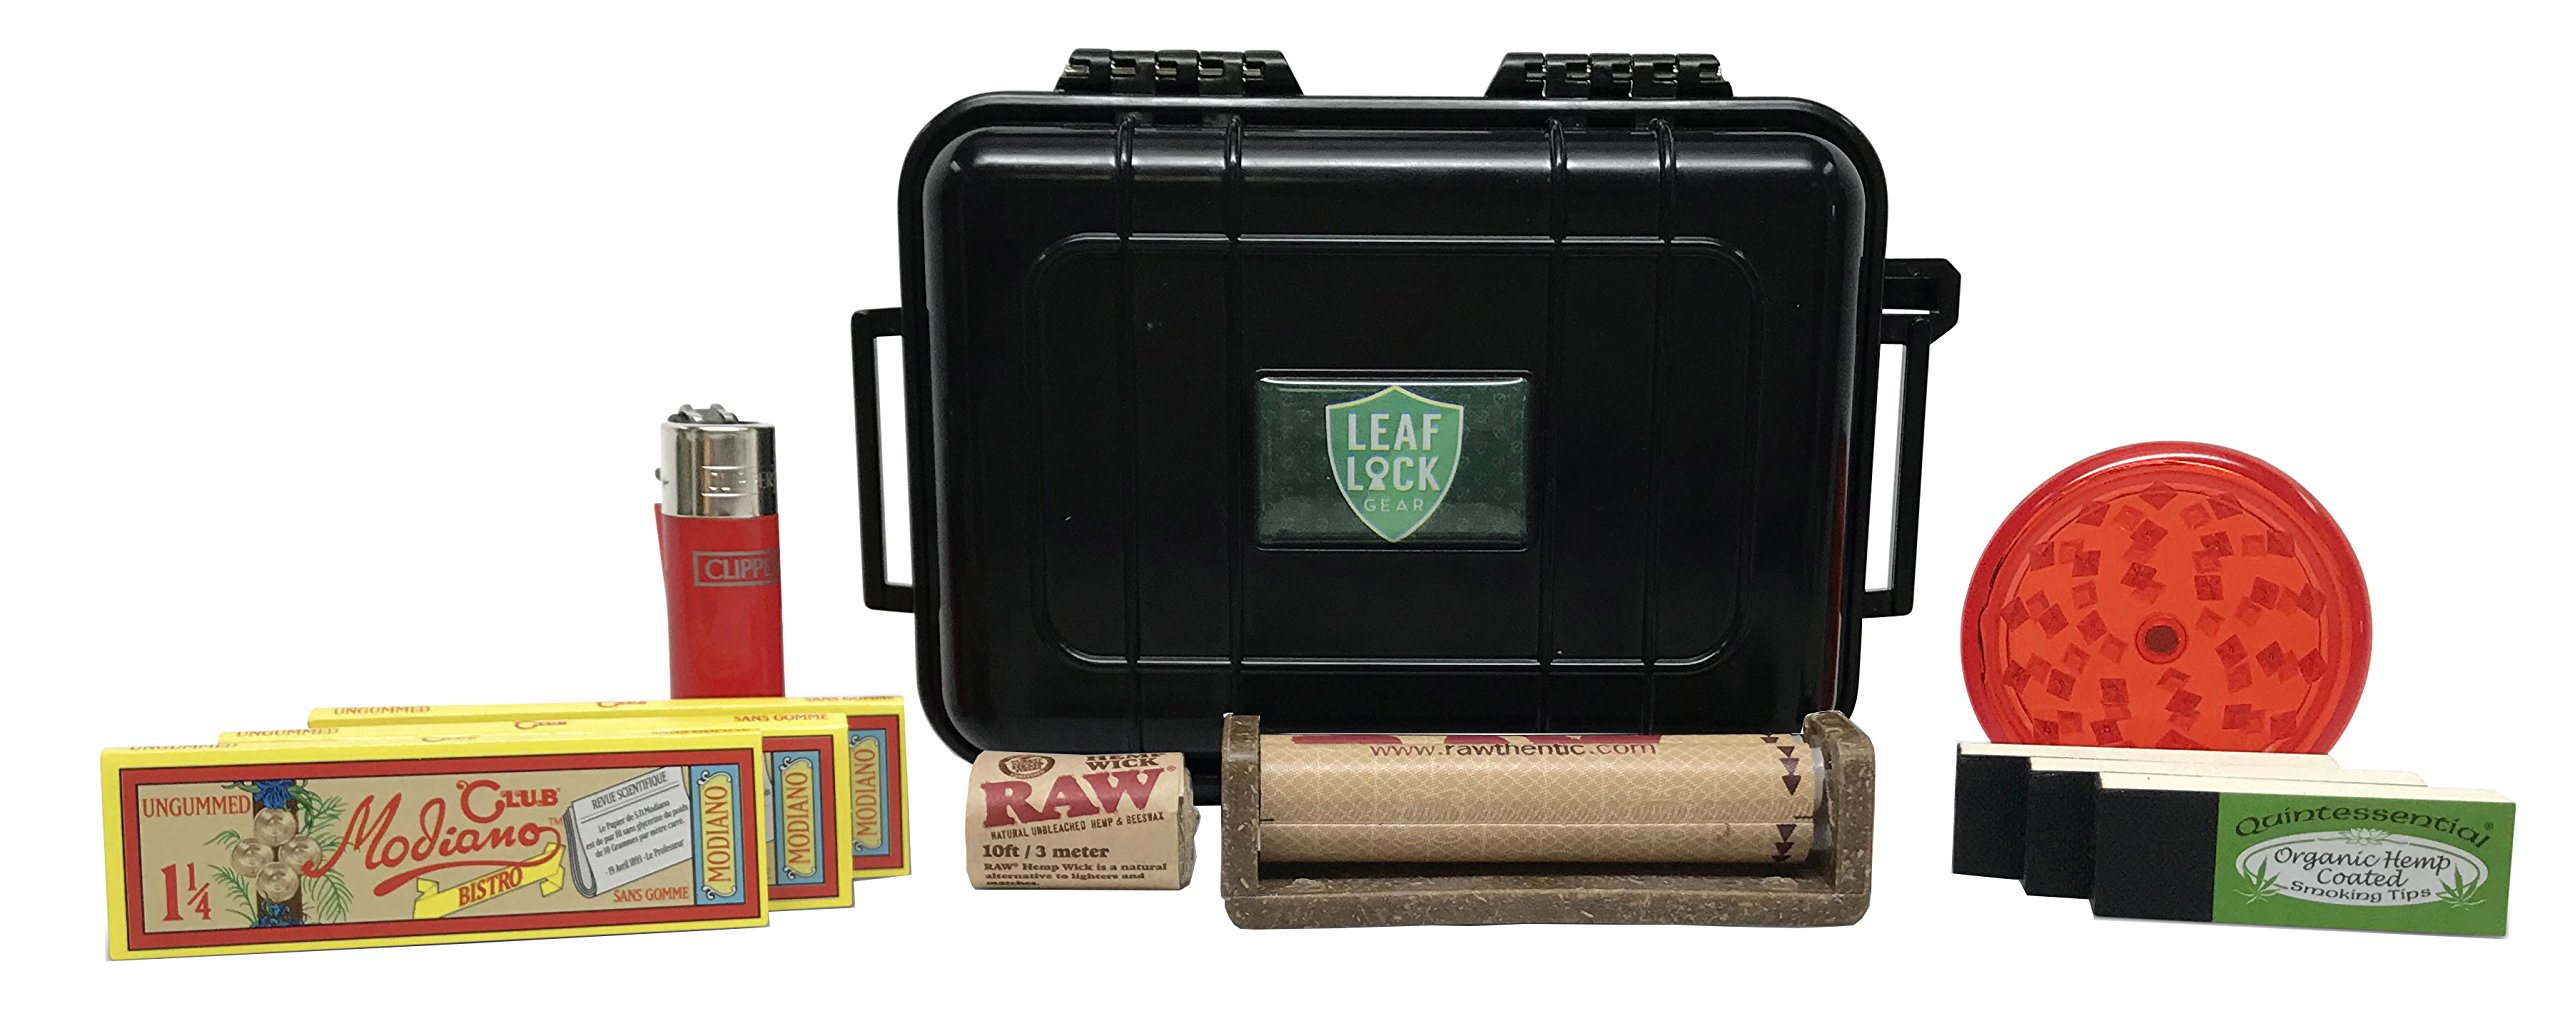 Club Modiano Rolling Papers Bistro (2 Pack), Quintessential Rolling Tips(2 Pack,) Raw Roller, Hemp Wick, Clipper Solid Short, Acrylic Grinder, with Leaf Lock Gear Travel Case - 9 Item Bundle